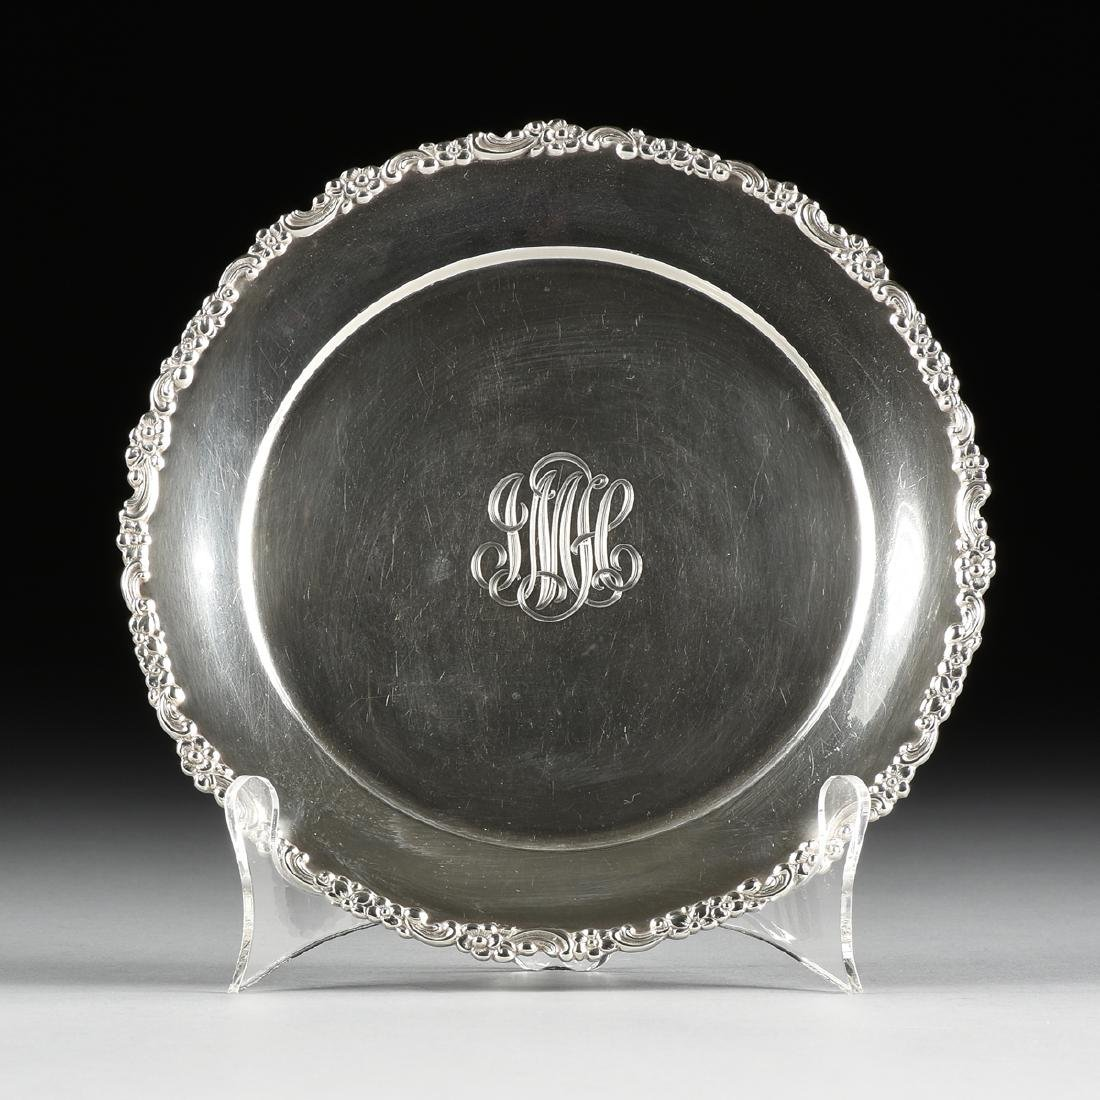 A TIFFANY & CO. STERLING SILVER PLATE, NEW YORK, NEW